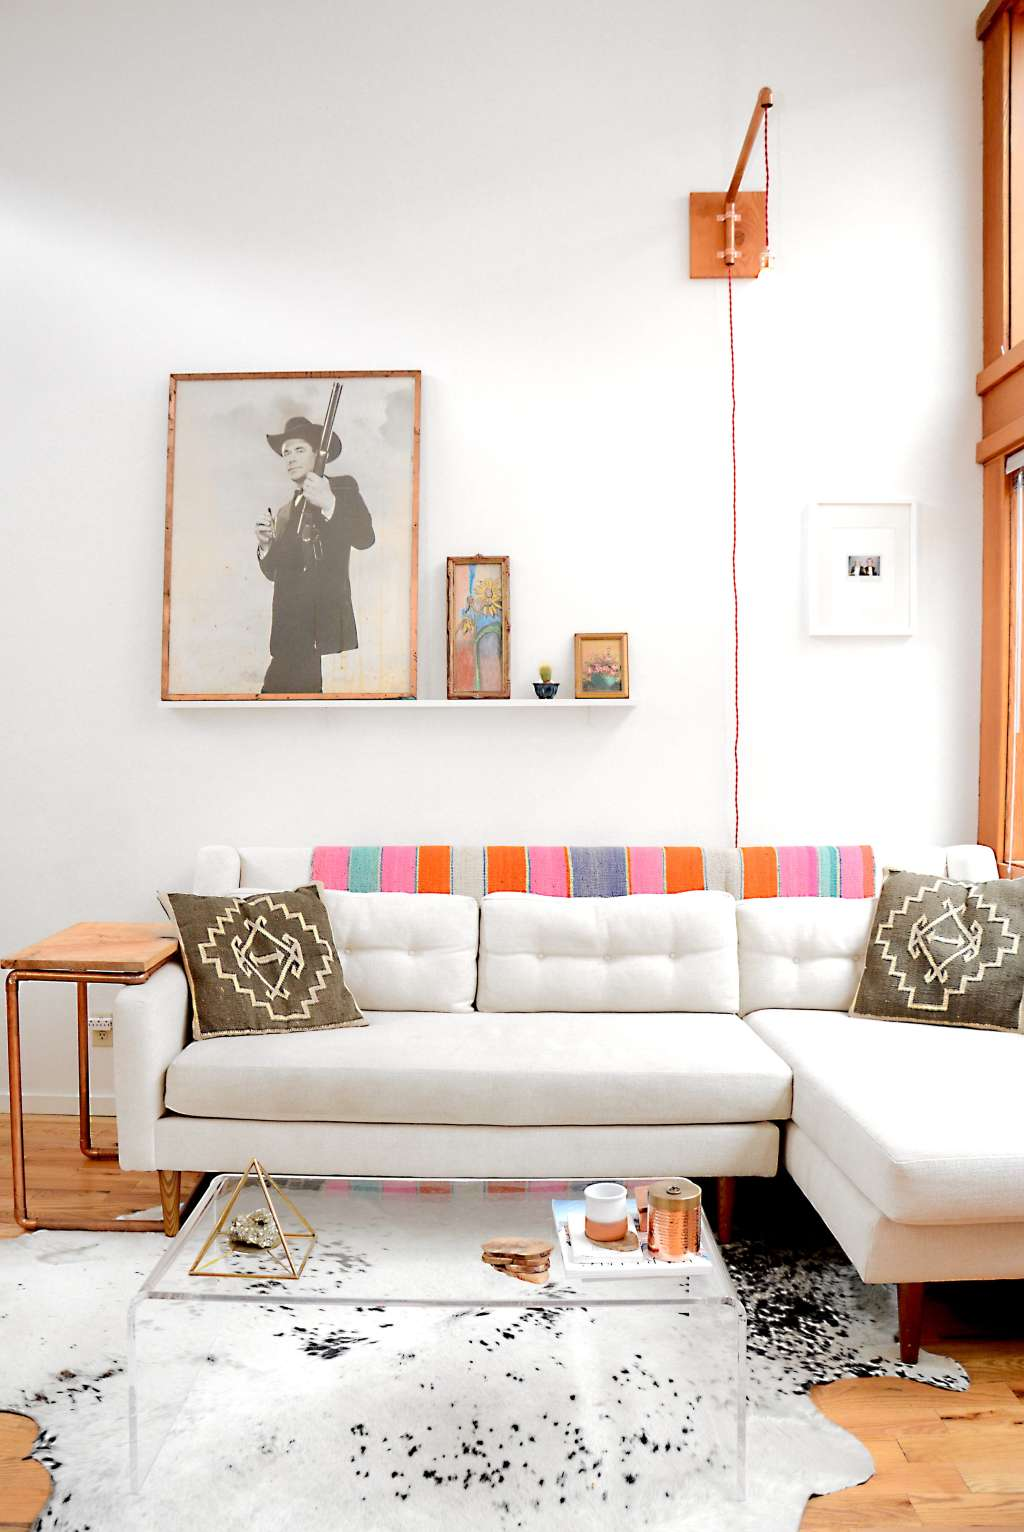 Get Rid of These 5 Things That are Keeping Your Home from Looking Its Best